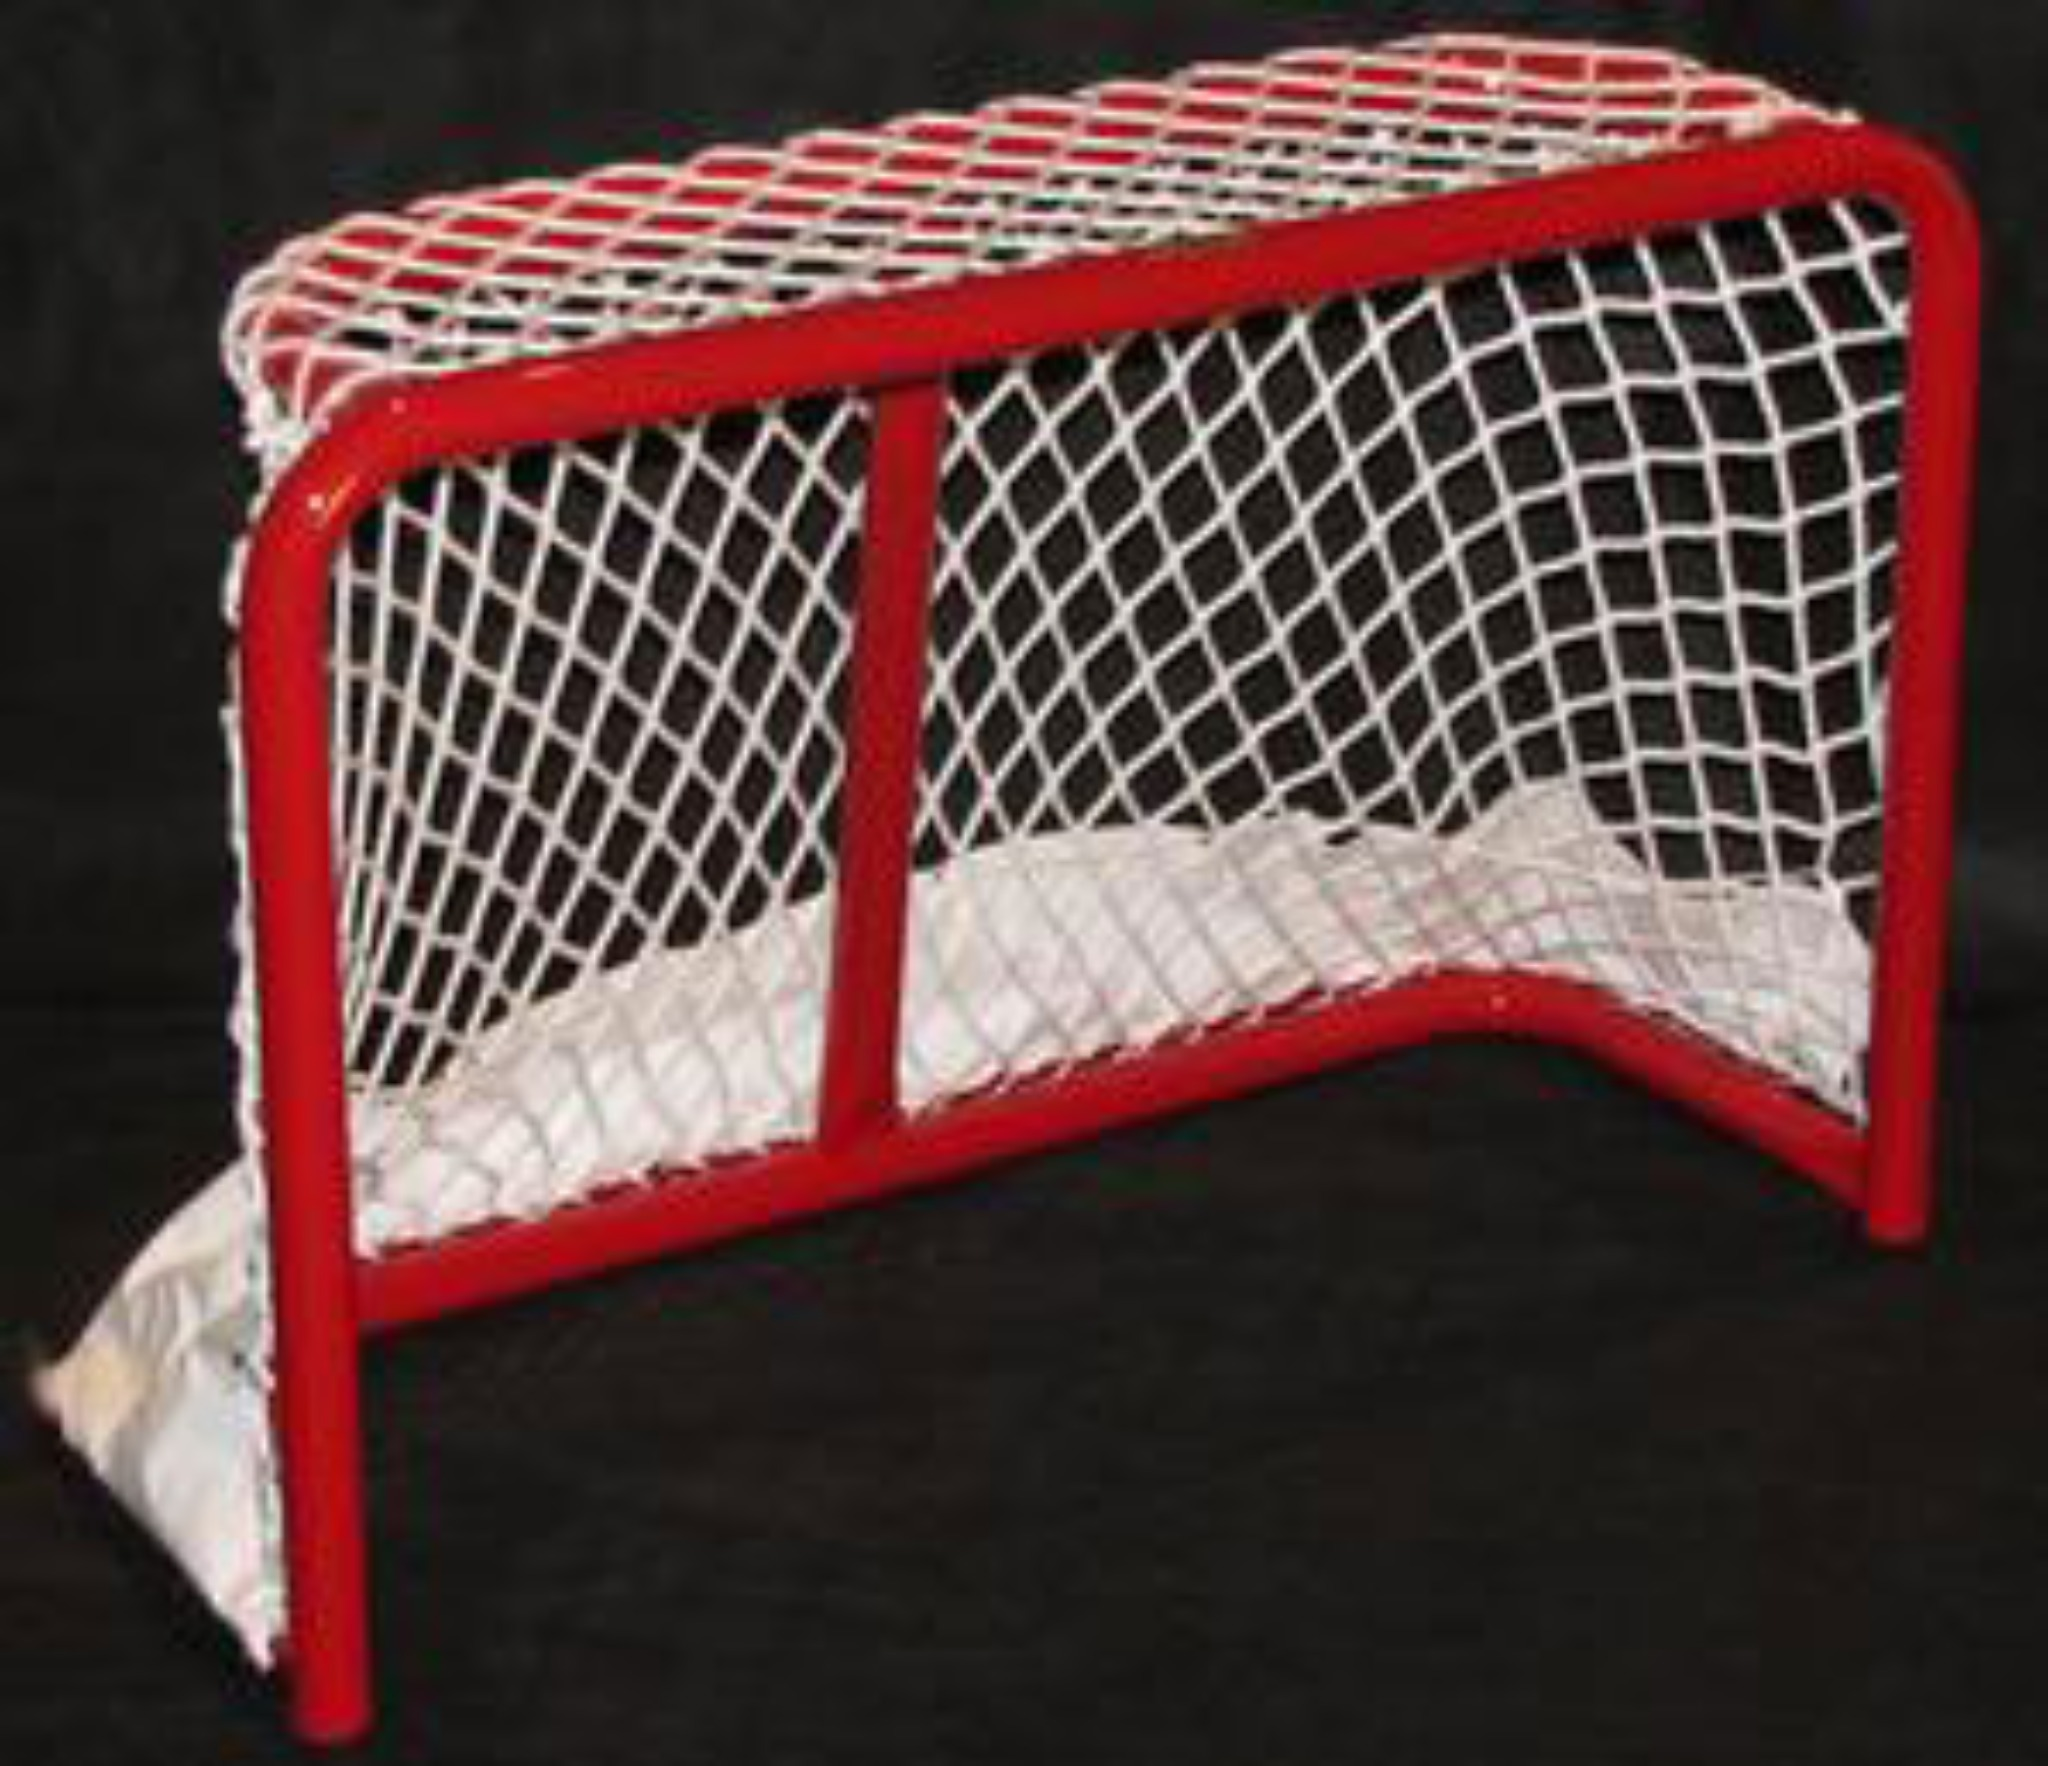 Steel Mini-Mite Hockey Goal, Made in the USA, with Welded Lacing Bar for Net Attachment. Age 6U Players with No Goalie. Size 3' x 2'.